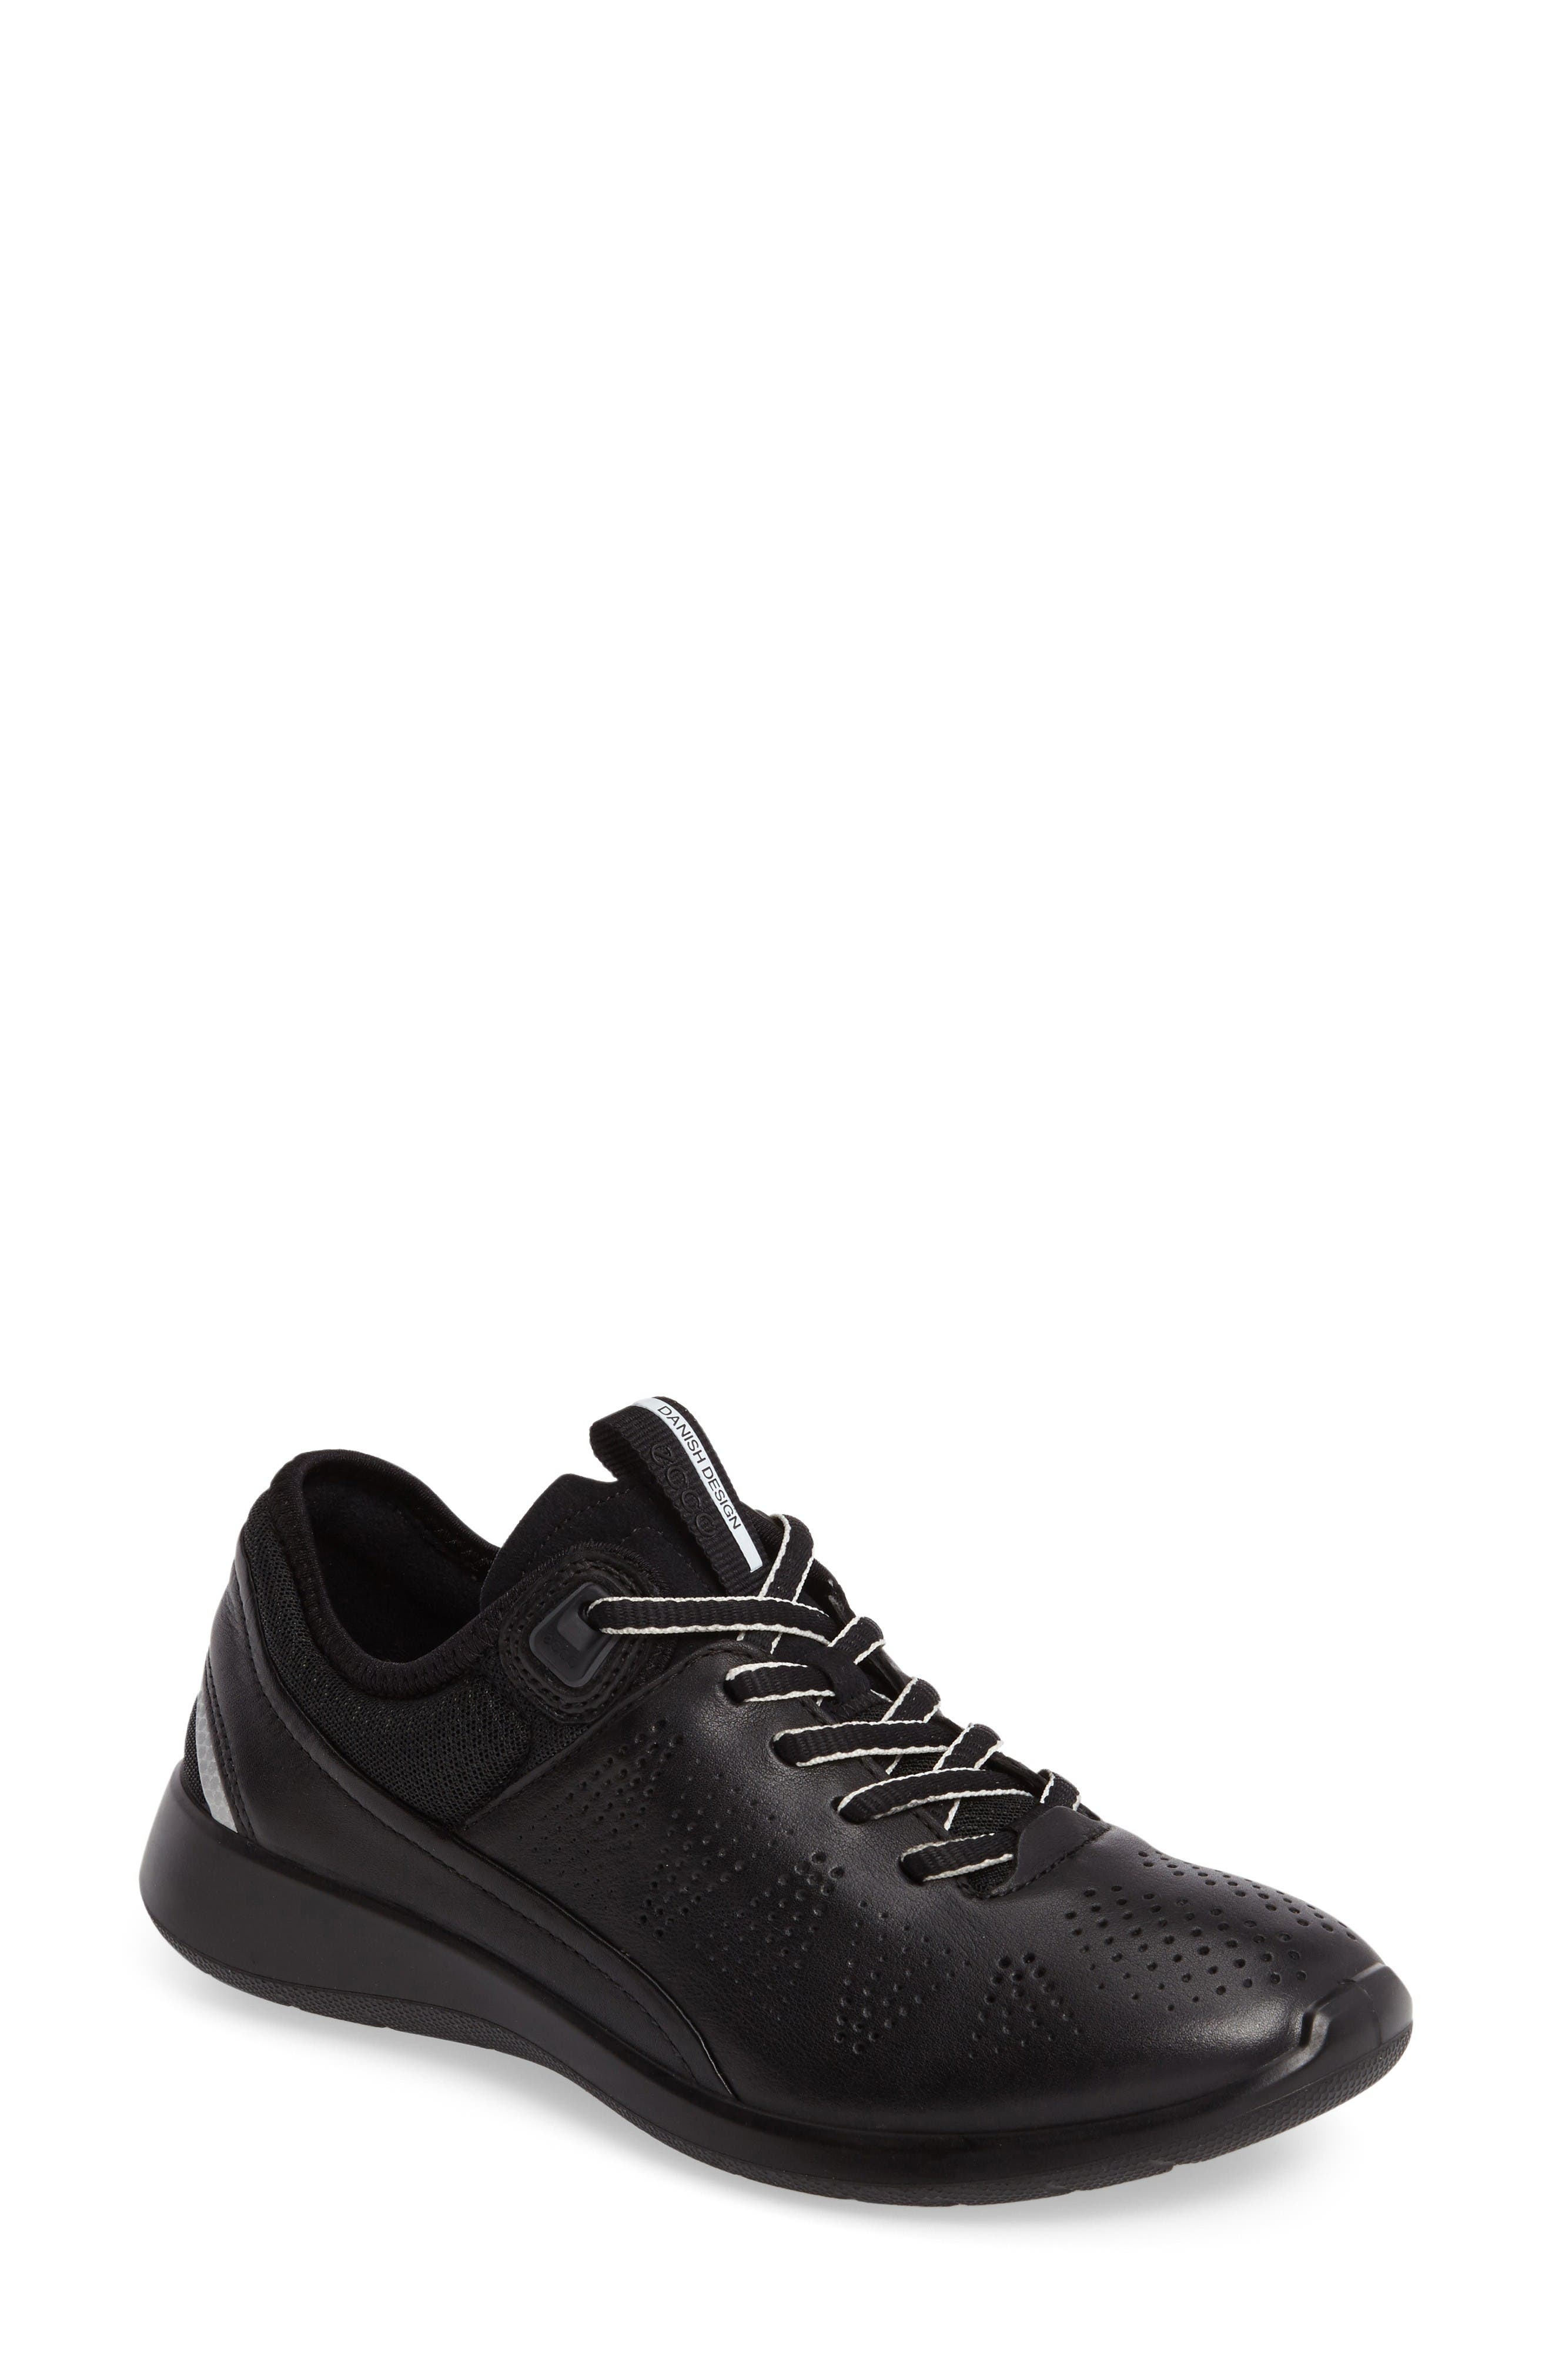 Soft 5 Sneaker,                         Main,                         color, Black Leather